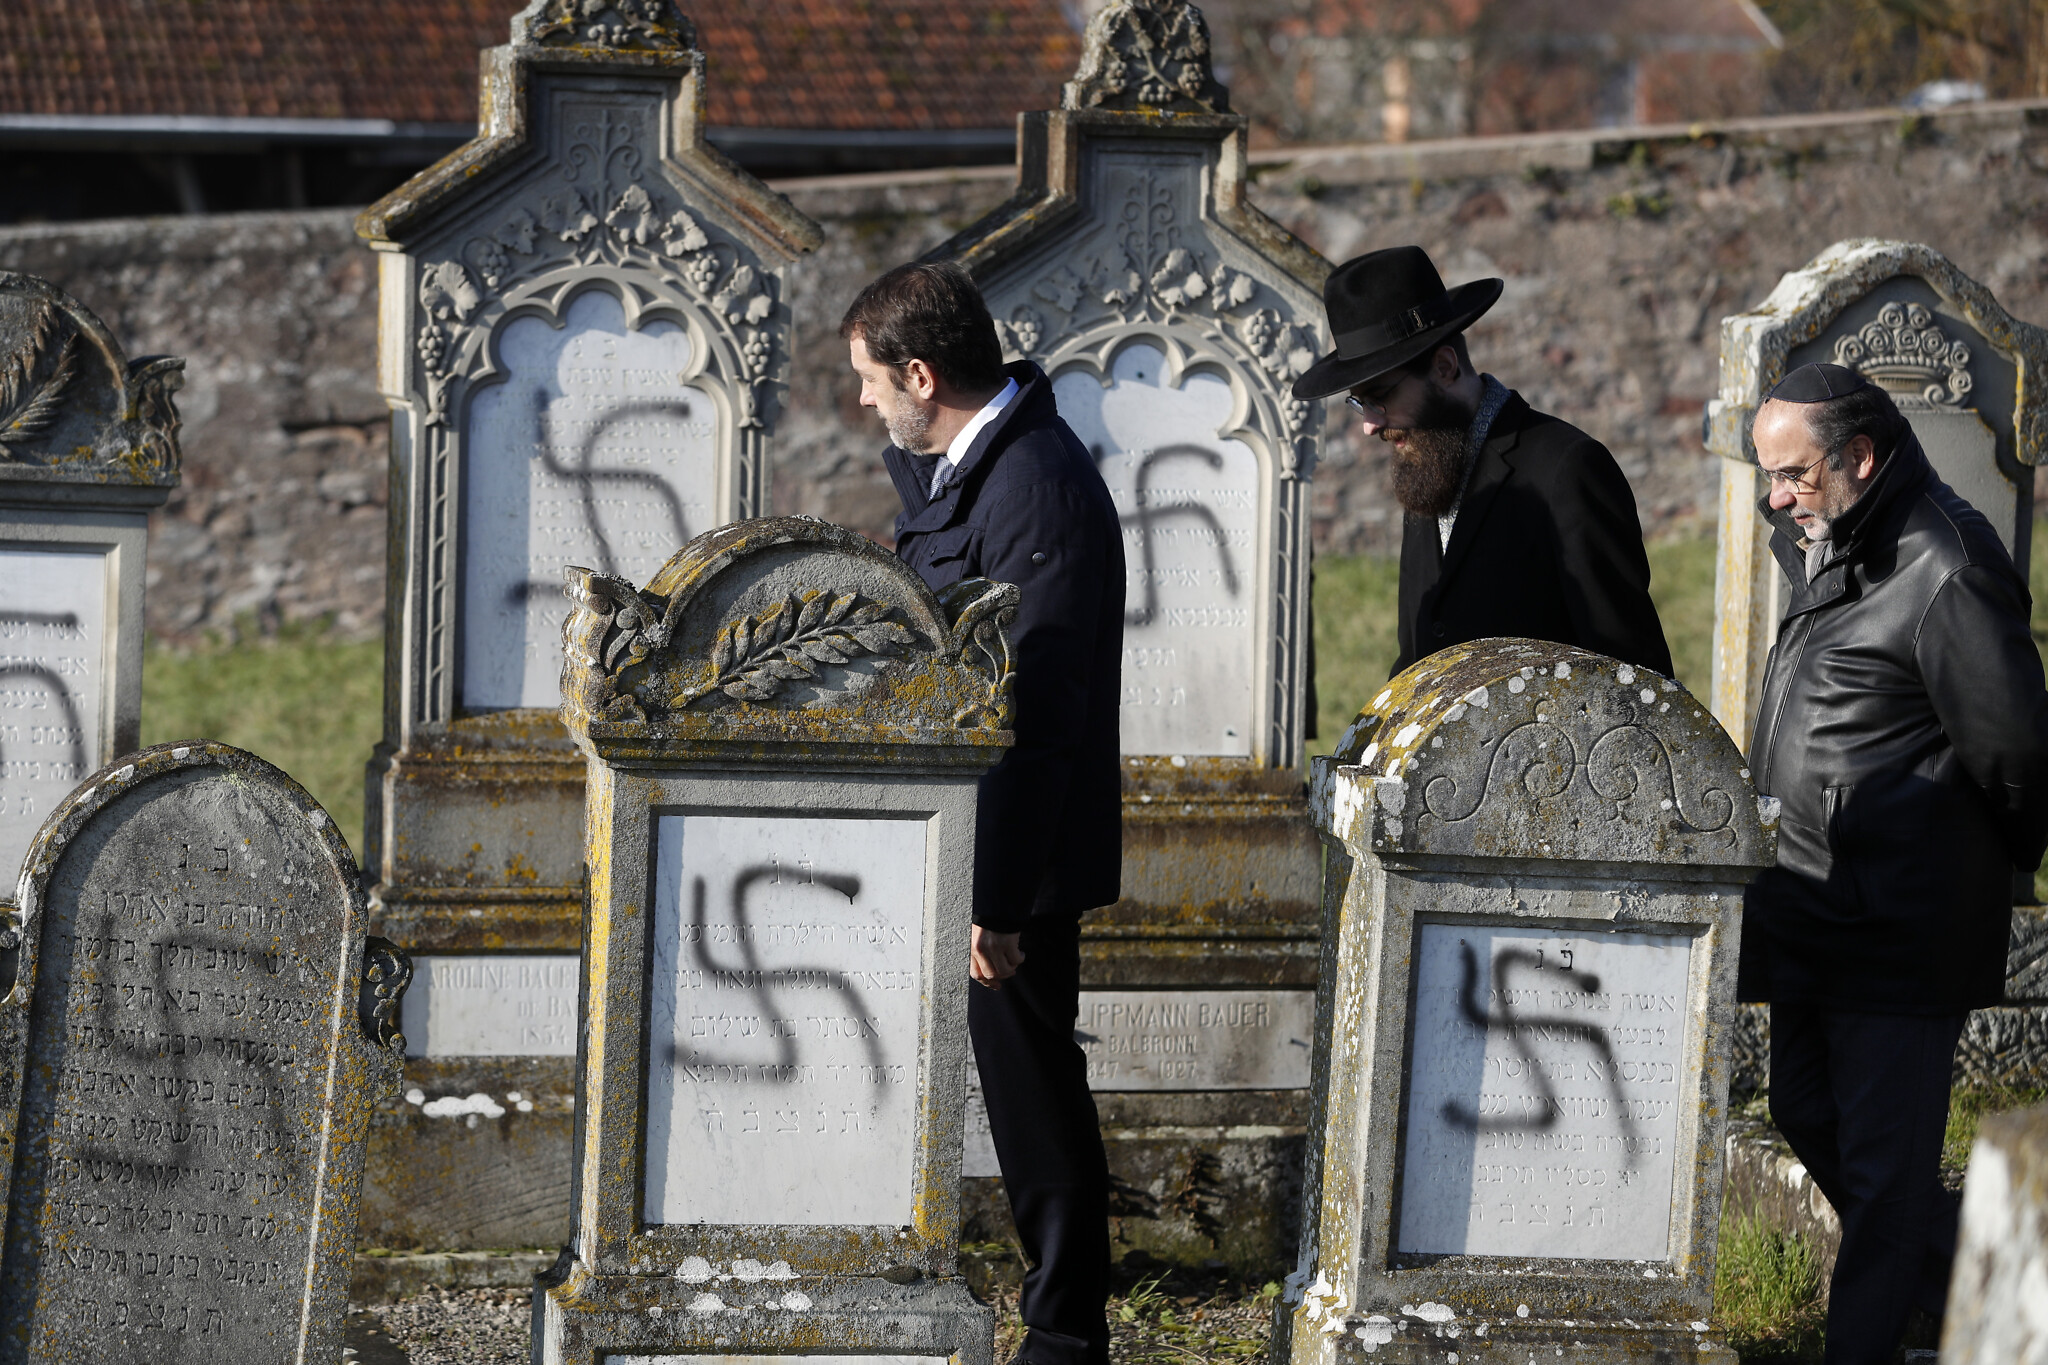 More than 100 graves defaced with swastikas in a French Jewish cemetery